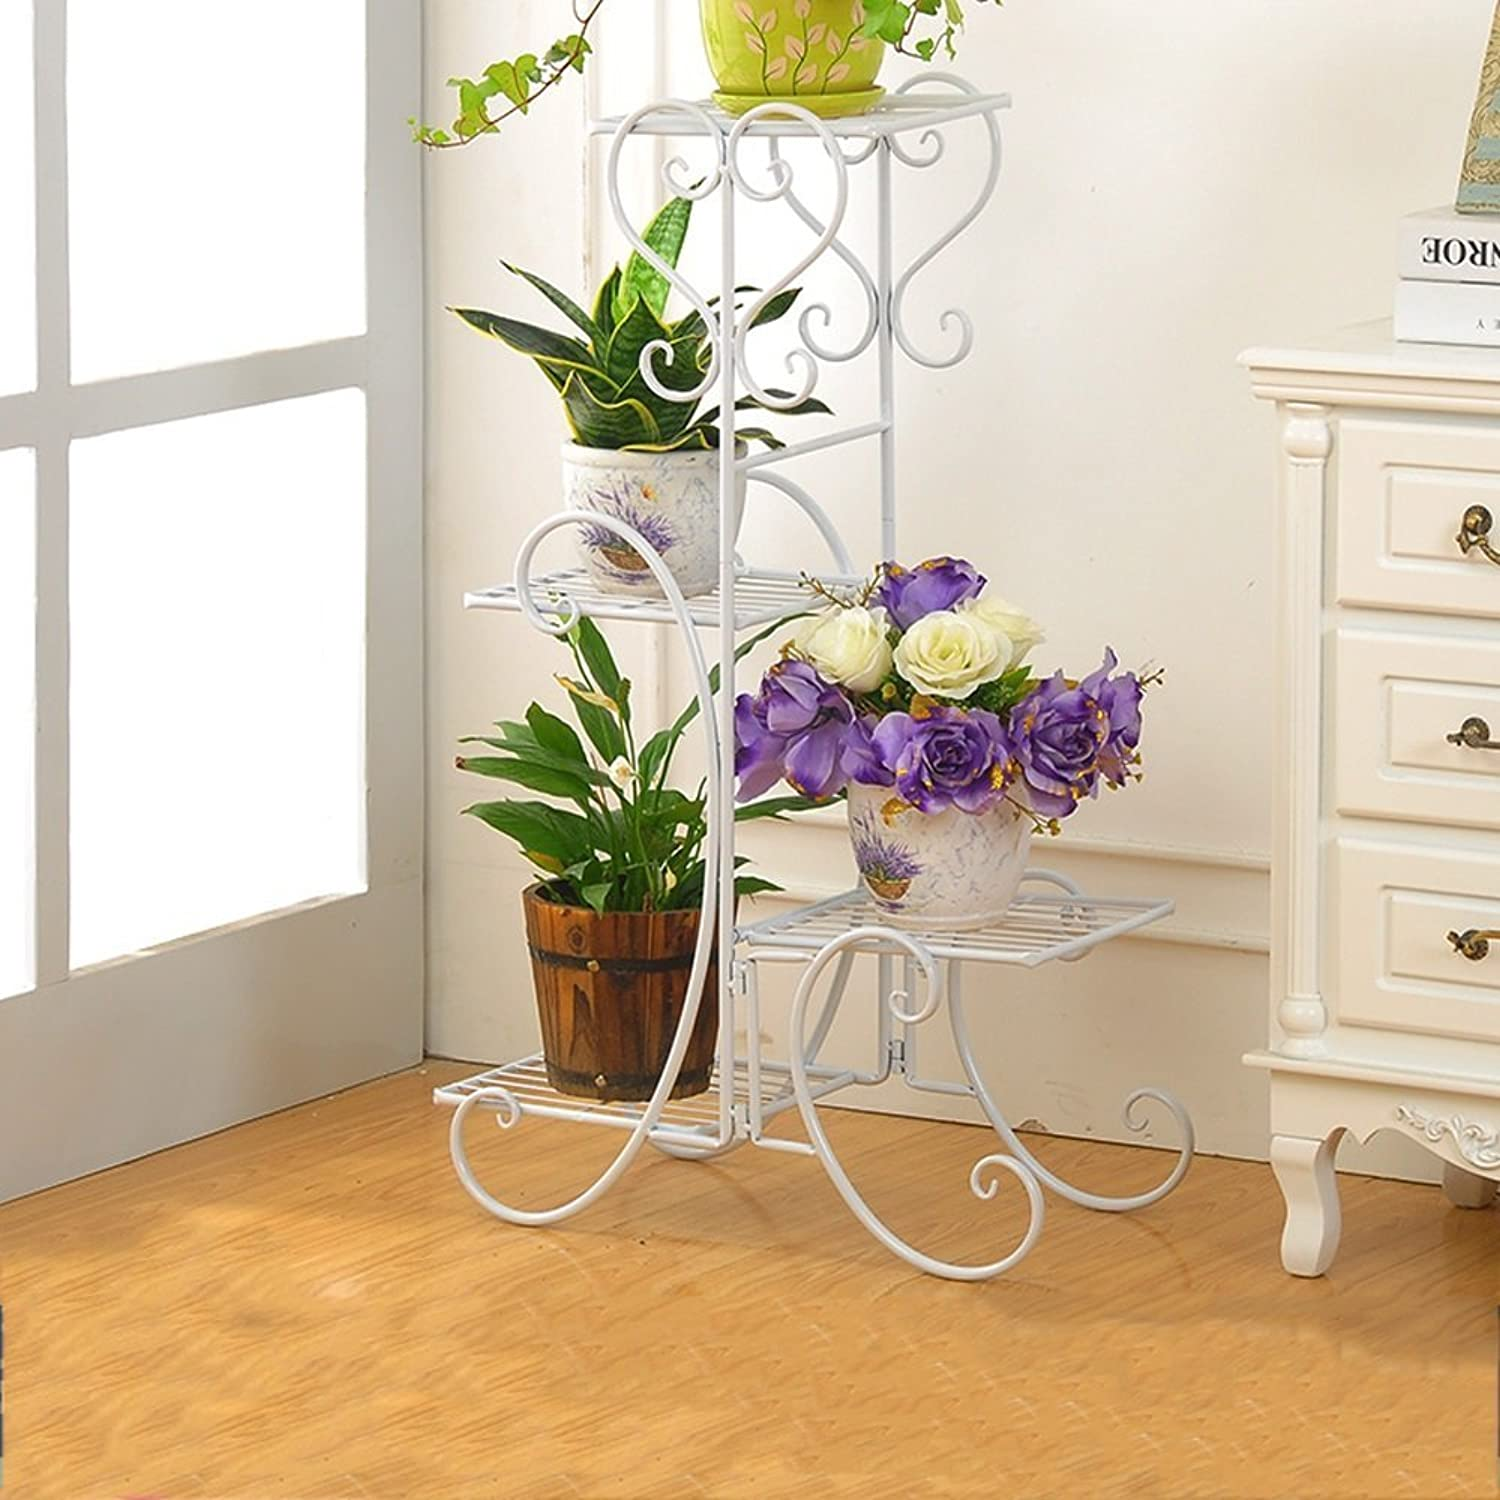 NYDZDM Flower Stand Wrought Iron Plant Shelf Storage Shelf Balcony Flower Pot Rack (color   White, Size   50  26  80cm)